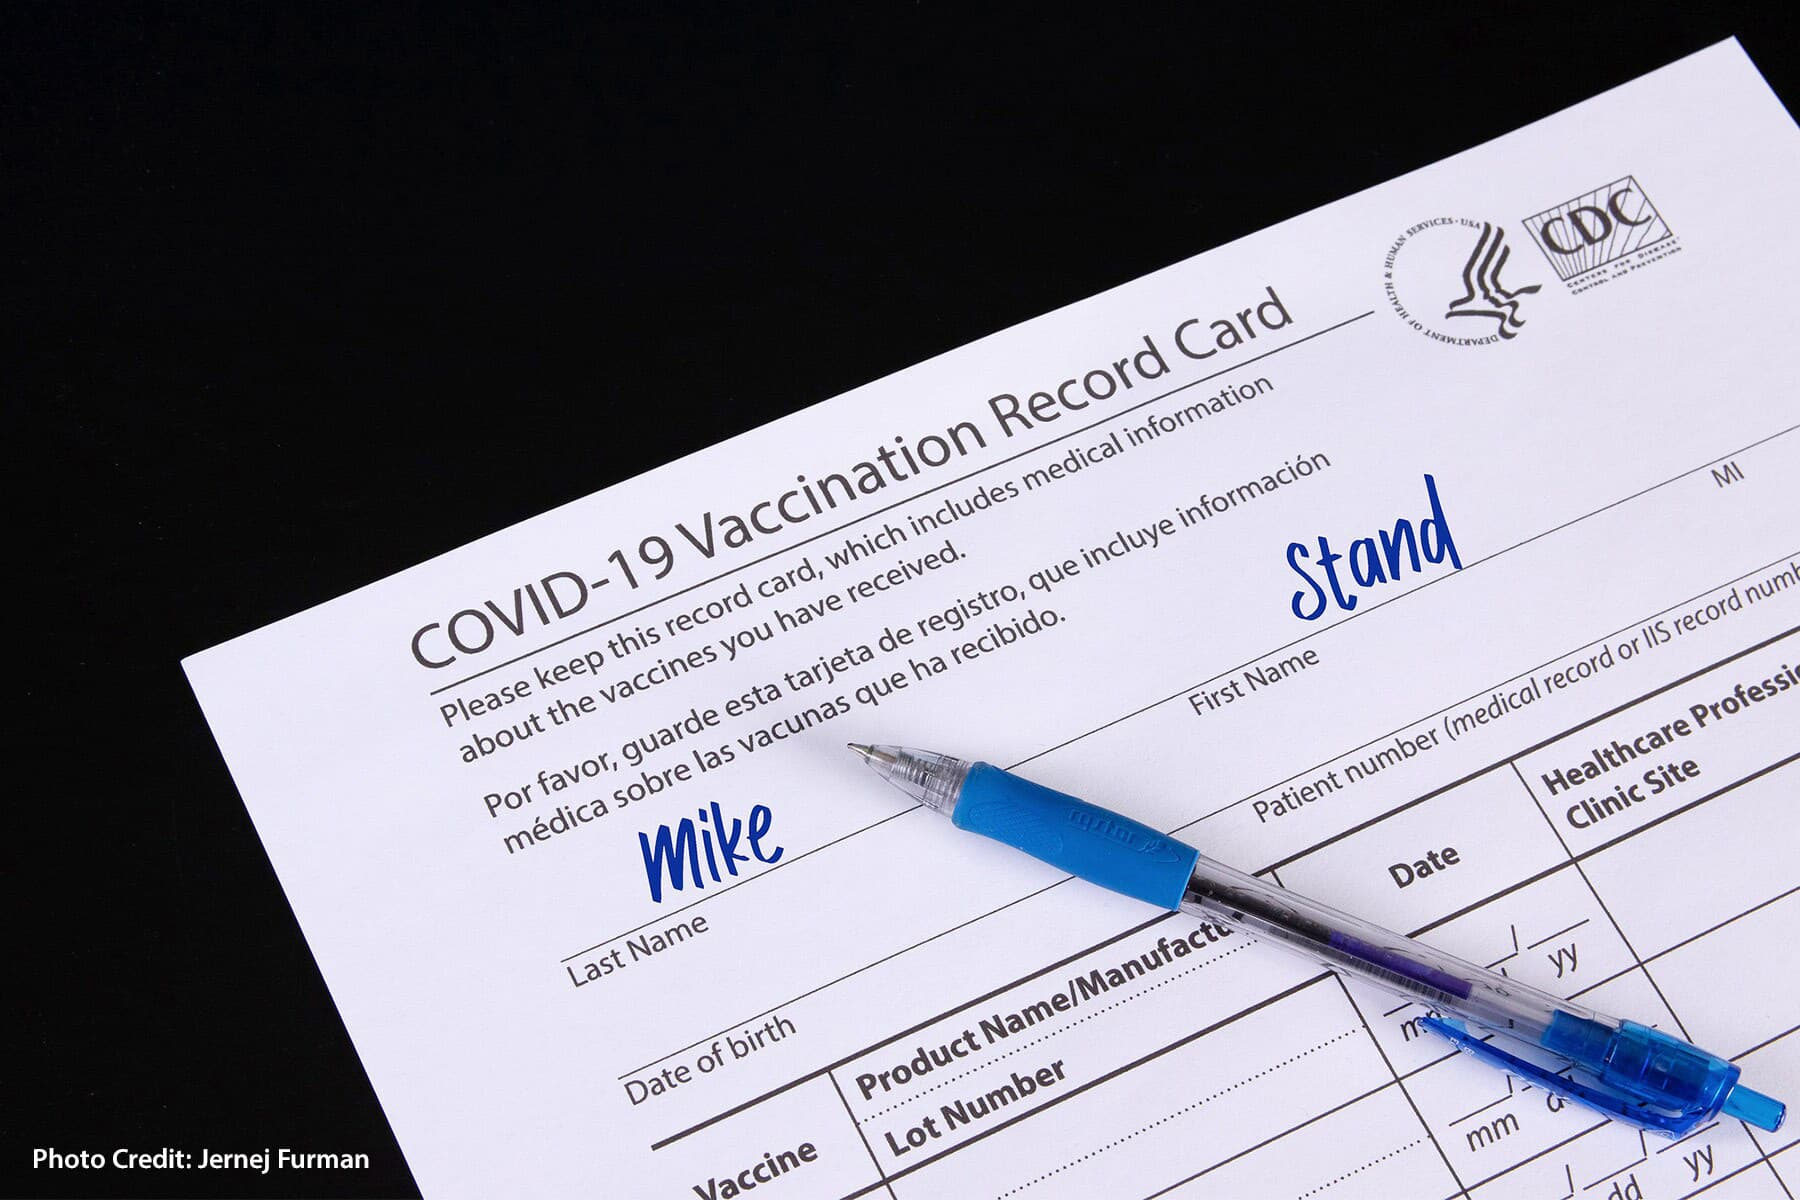 Two Women Charged in Fake COVID Vaccination Card Scam